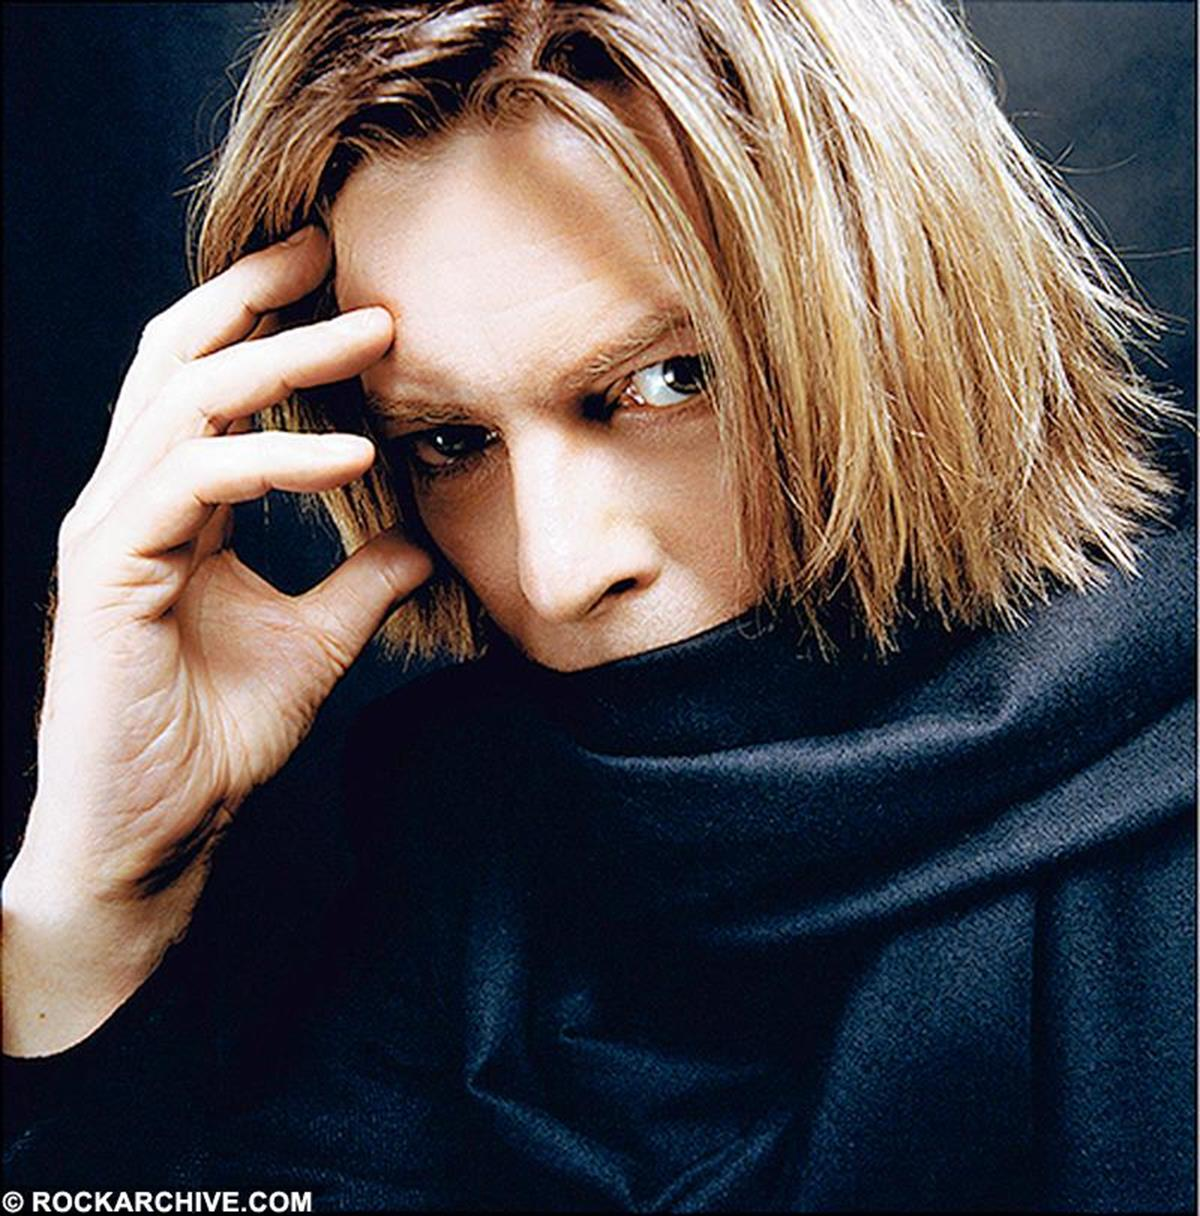 David Bowie wearing a black scarf on a photo shoot in New York in 2002. © Mick Rock